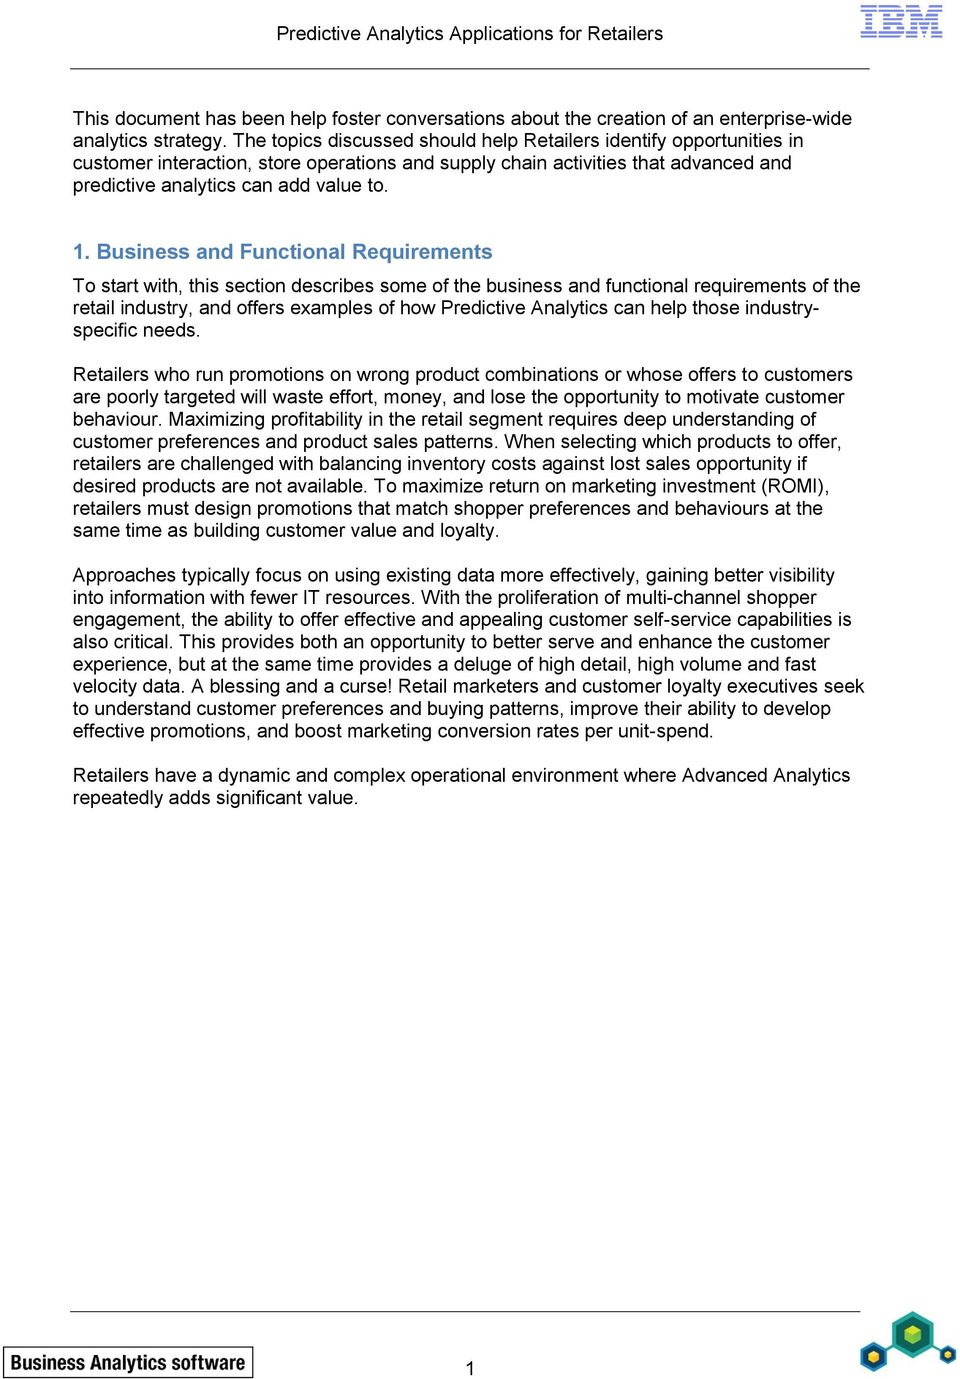 Business and Functional Requirements To start with, this section describes some of the business and functional requirements of the retail industry, and offers examples of how Predictive Analytics can